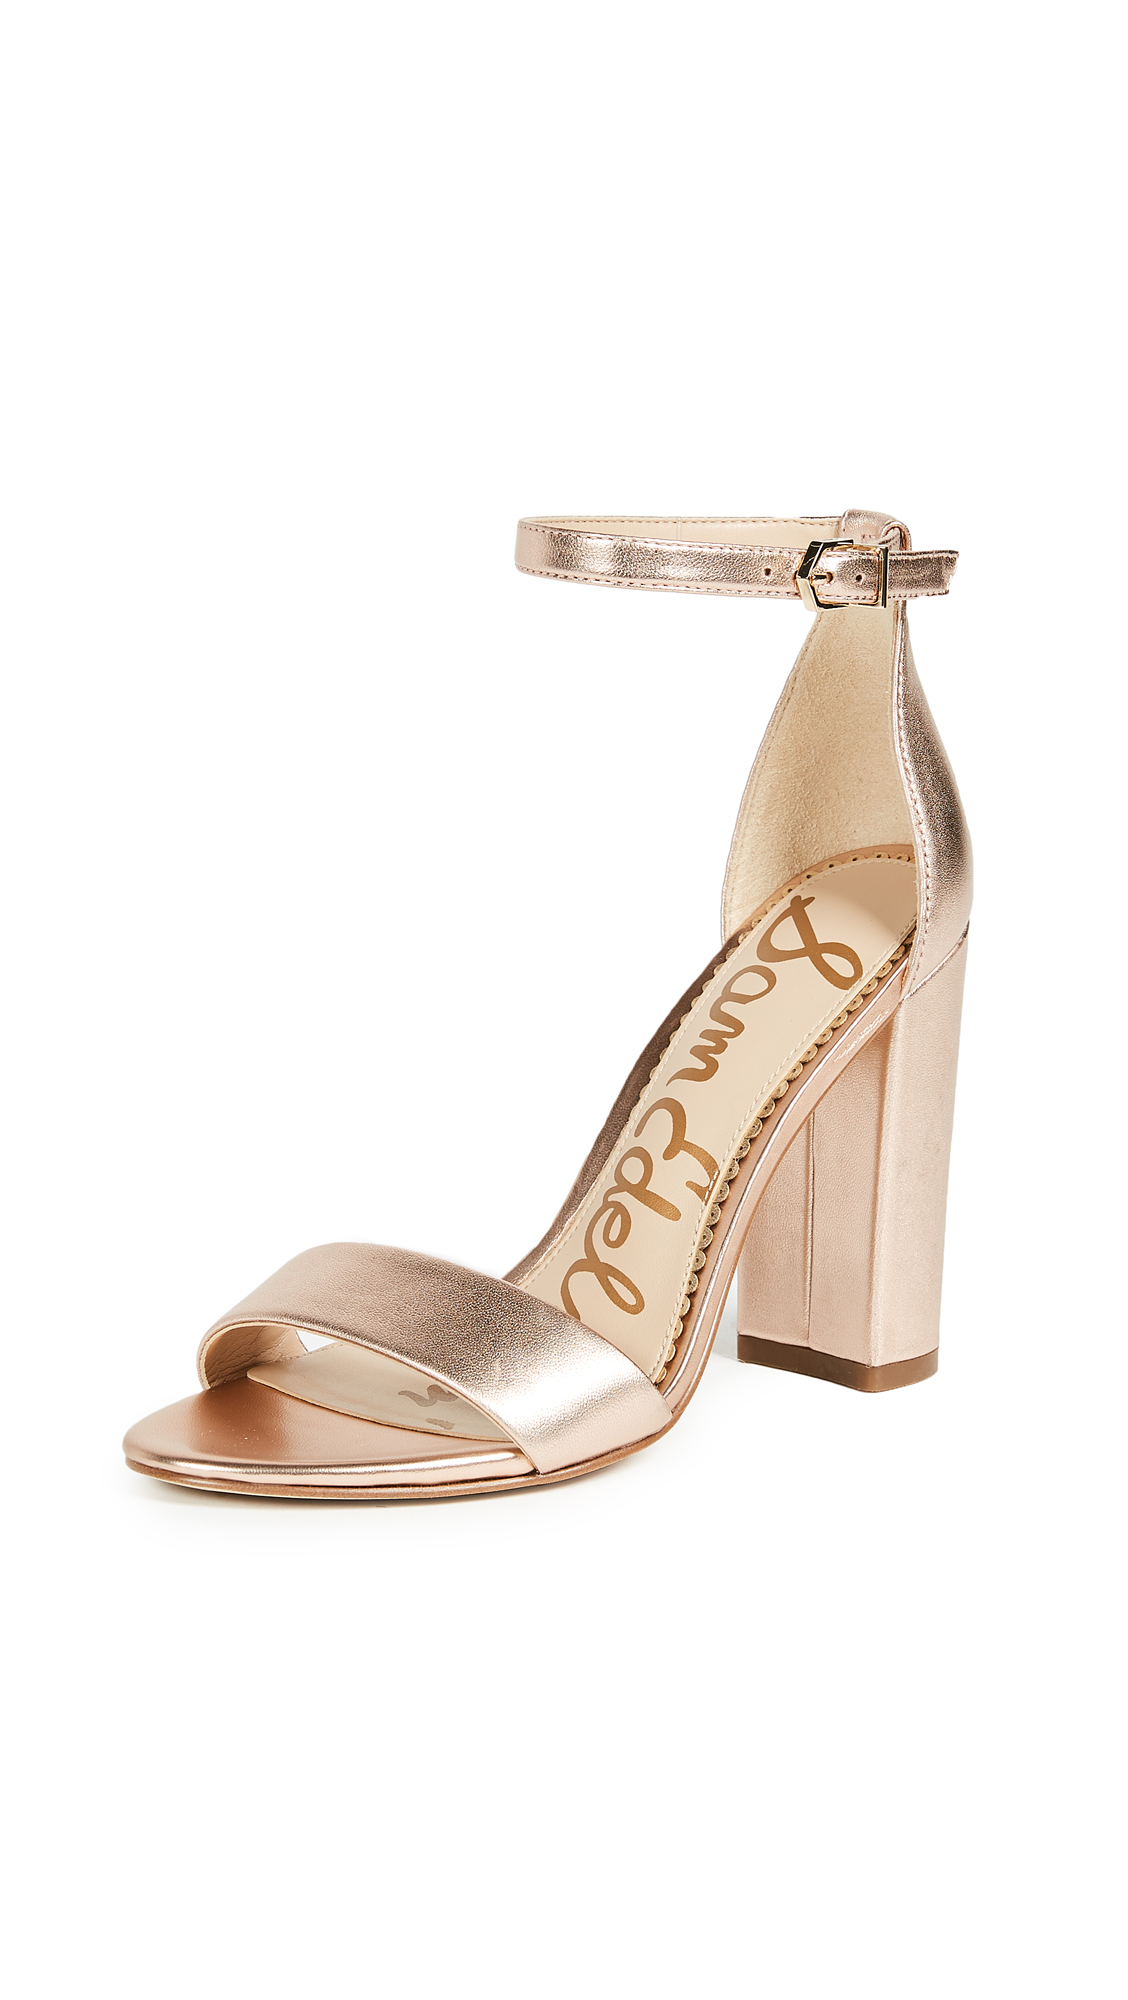 Sam Edelman Yaro Sandals - Blush Gold